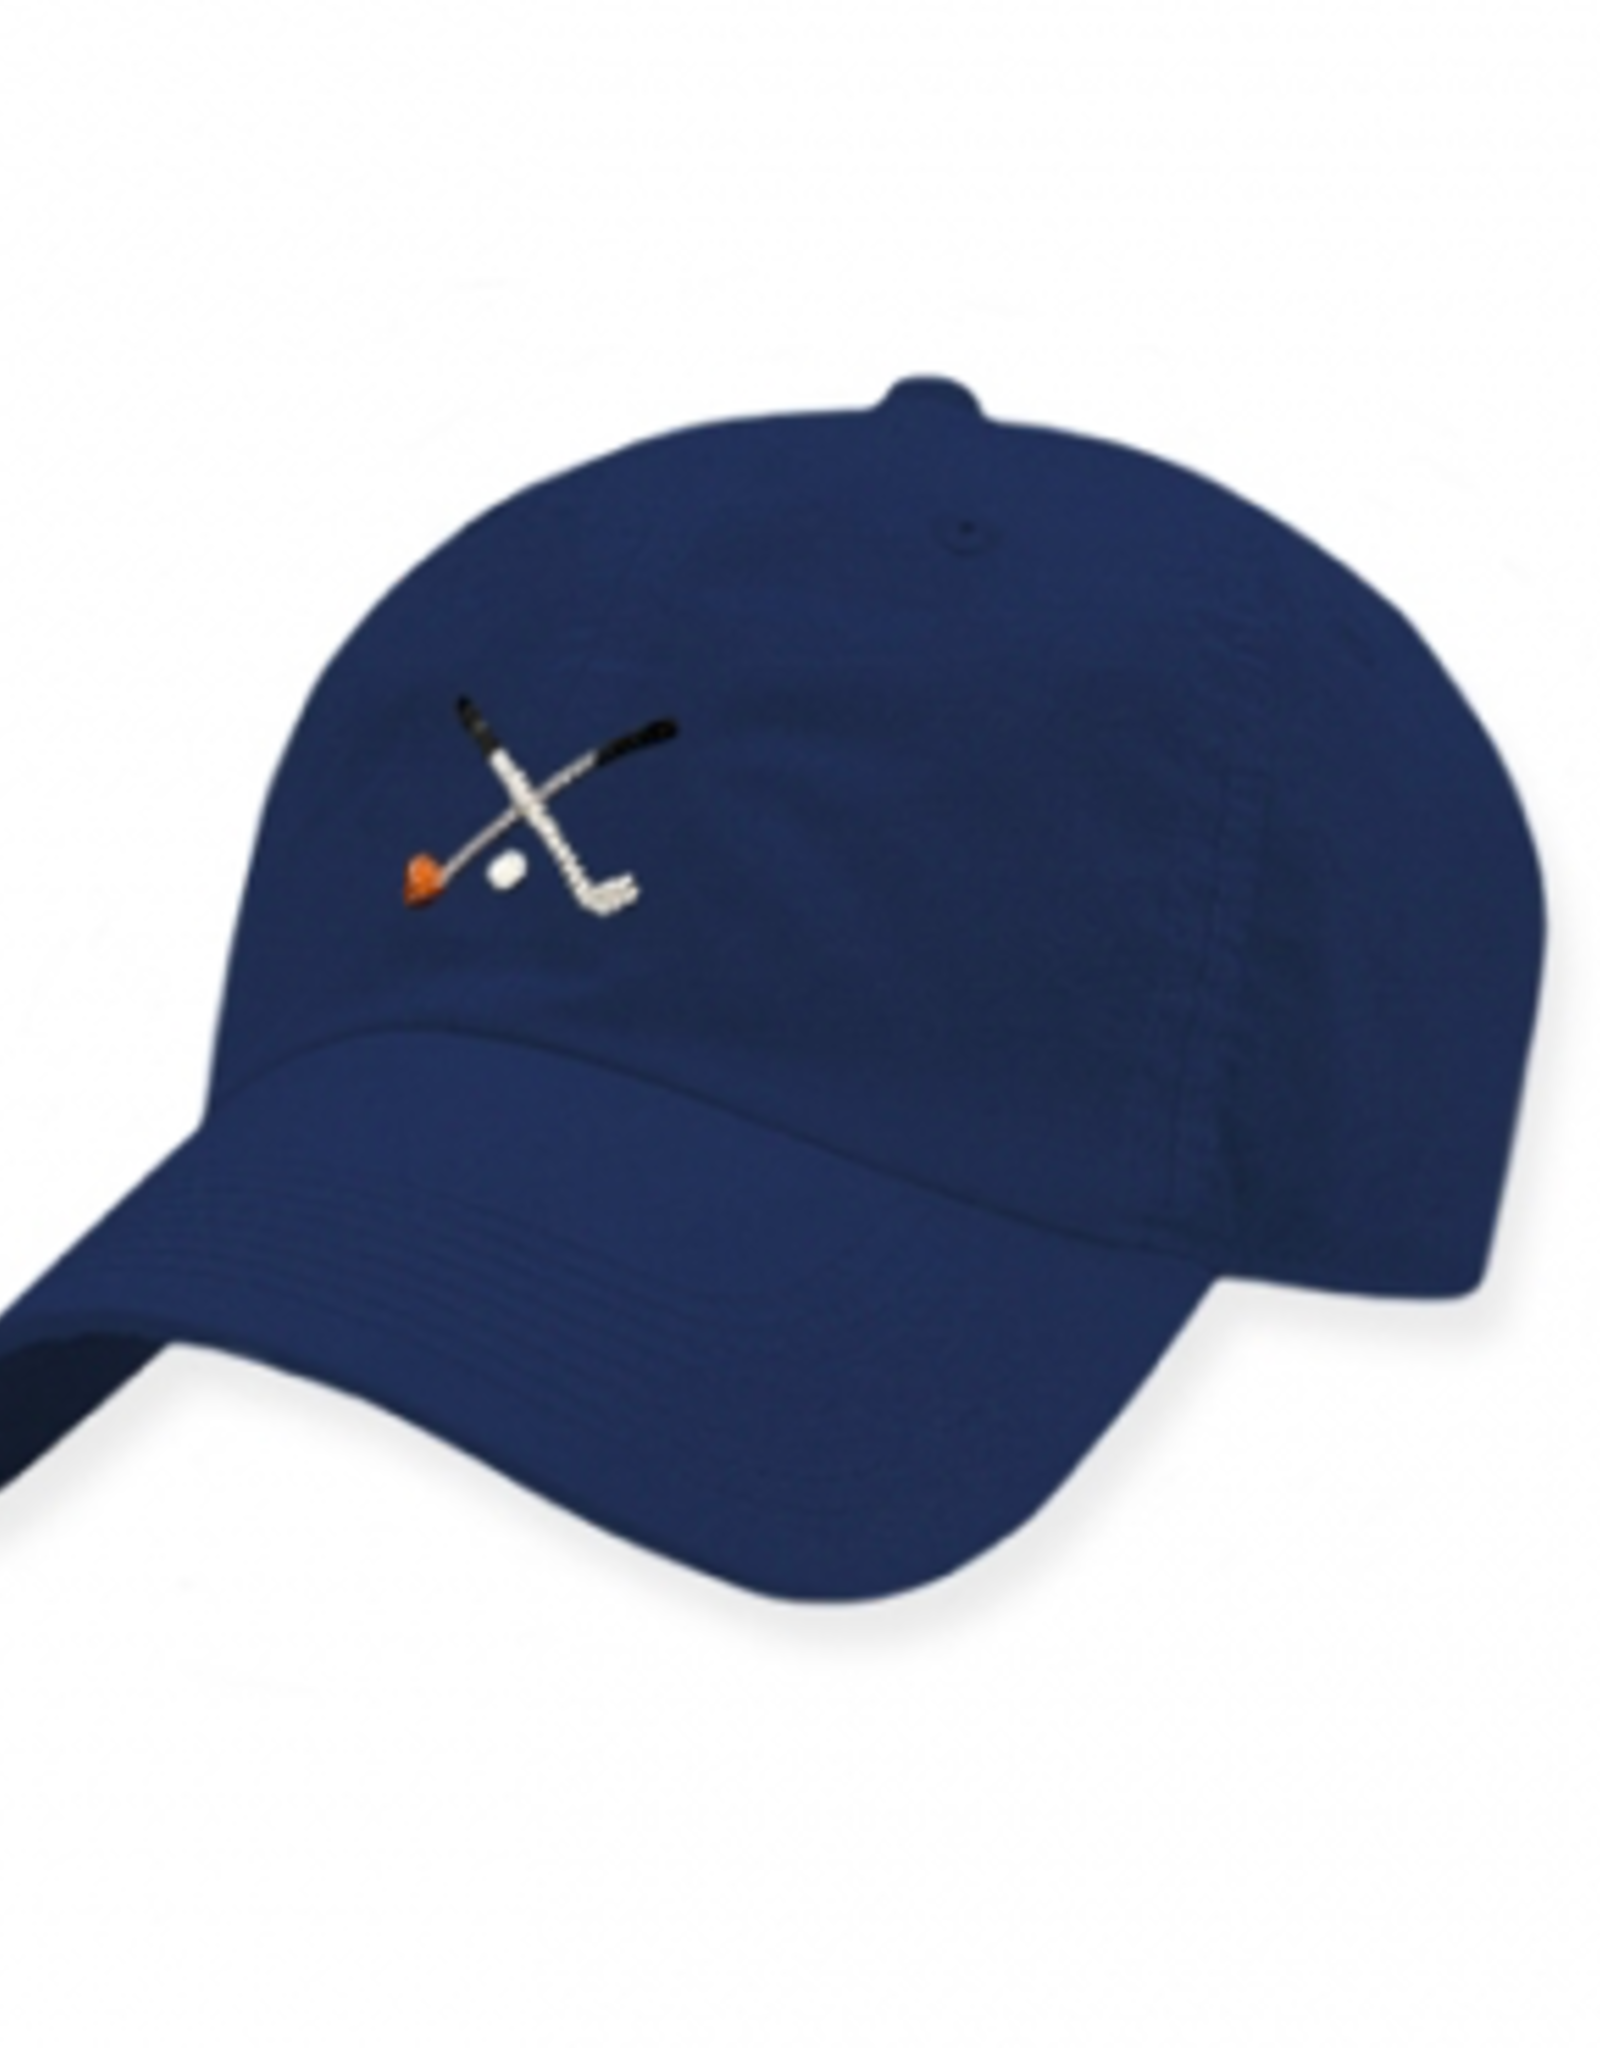 Smathers and Branson Crossed Clubs Performance Hat (Navy)